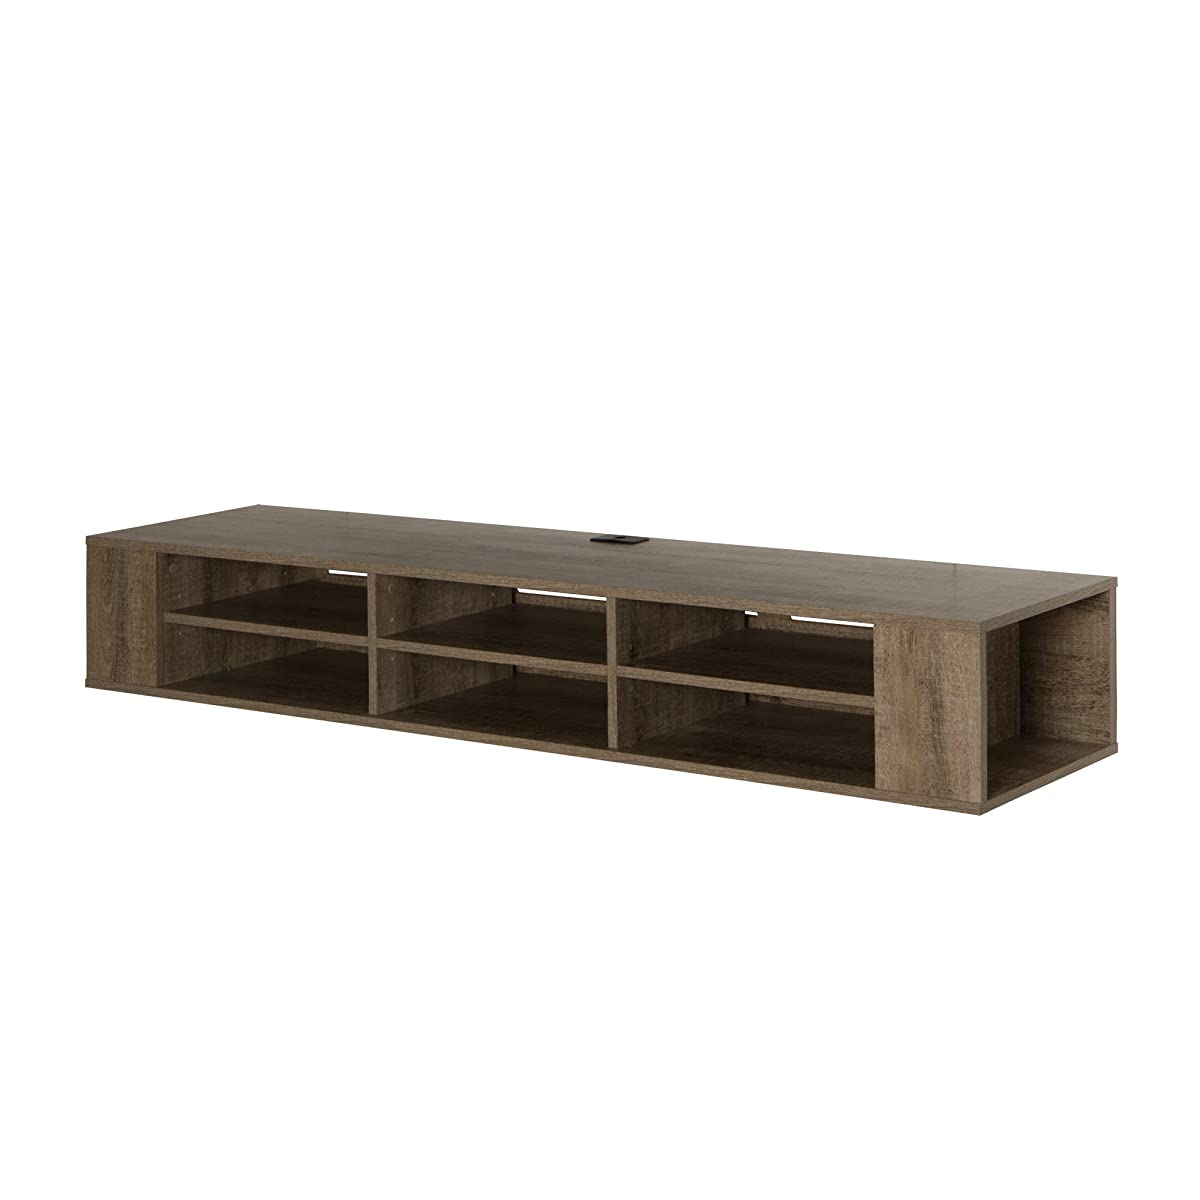 Hanging Media Console South Shore City Life Wall Mounted Media Console 66